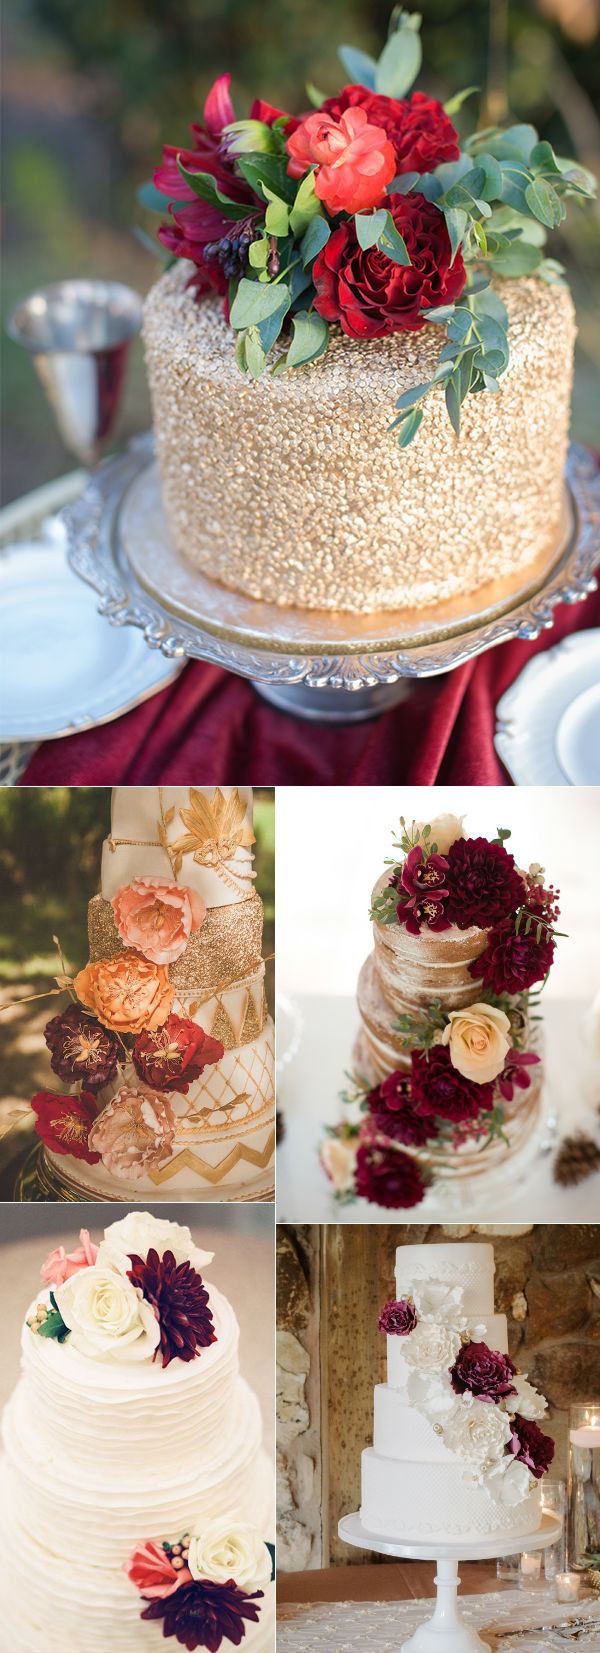 Fall Wedding Cakes Ideas  32 Amazing Wedding Cakes Perfect For Fall